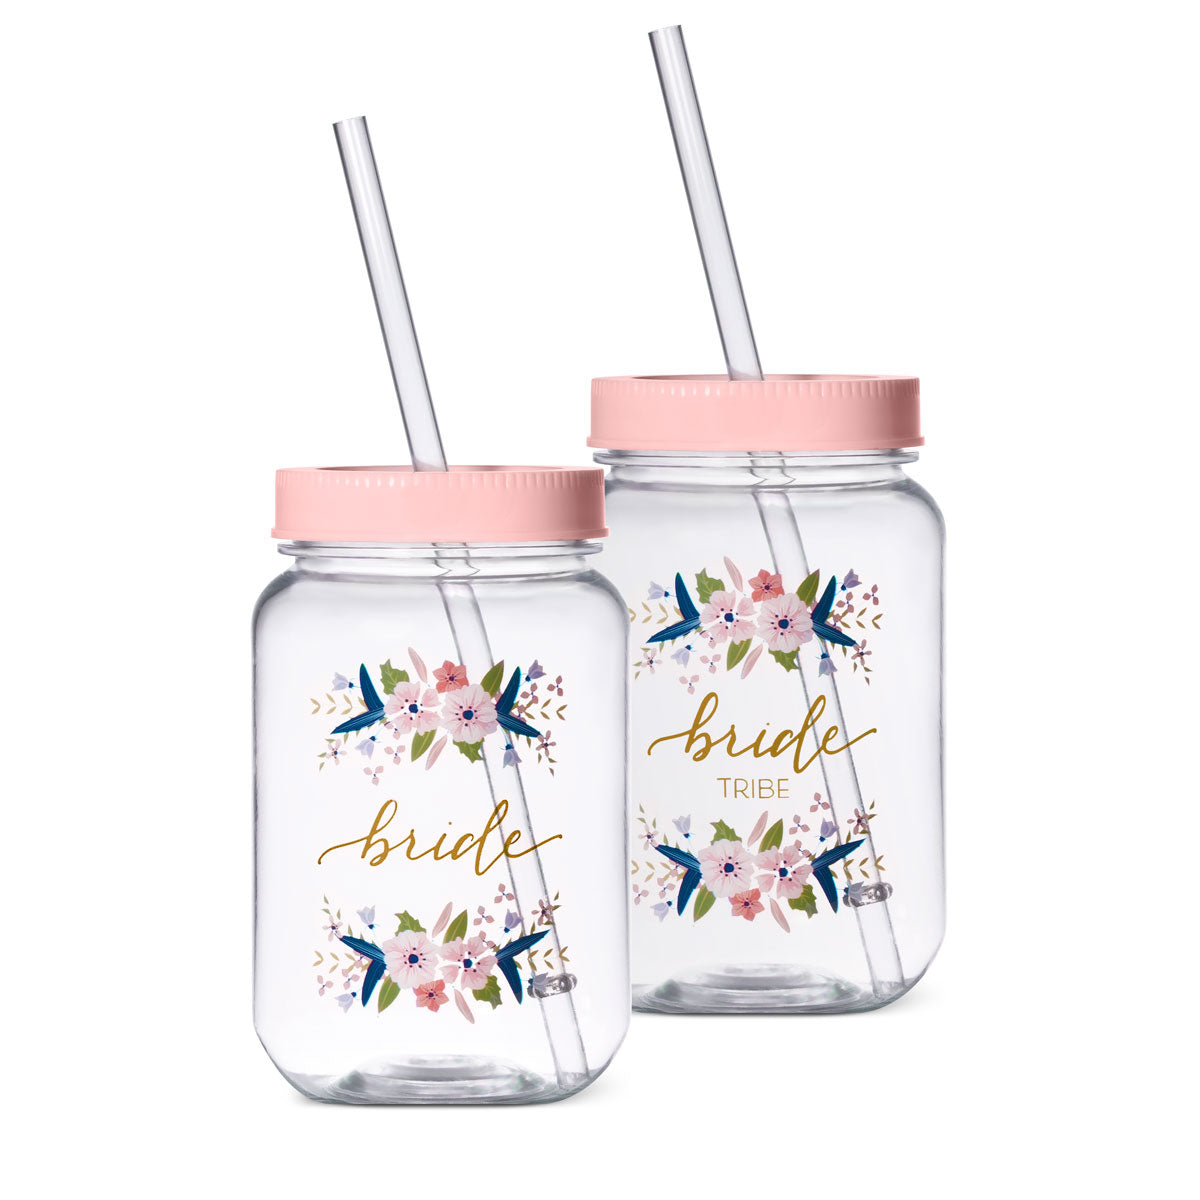 16 oz. Bride or Bride Tribe Plastic Mason Jar in Pink and Gold Calligraphy